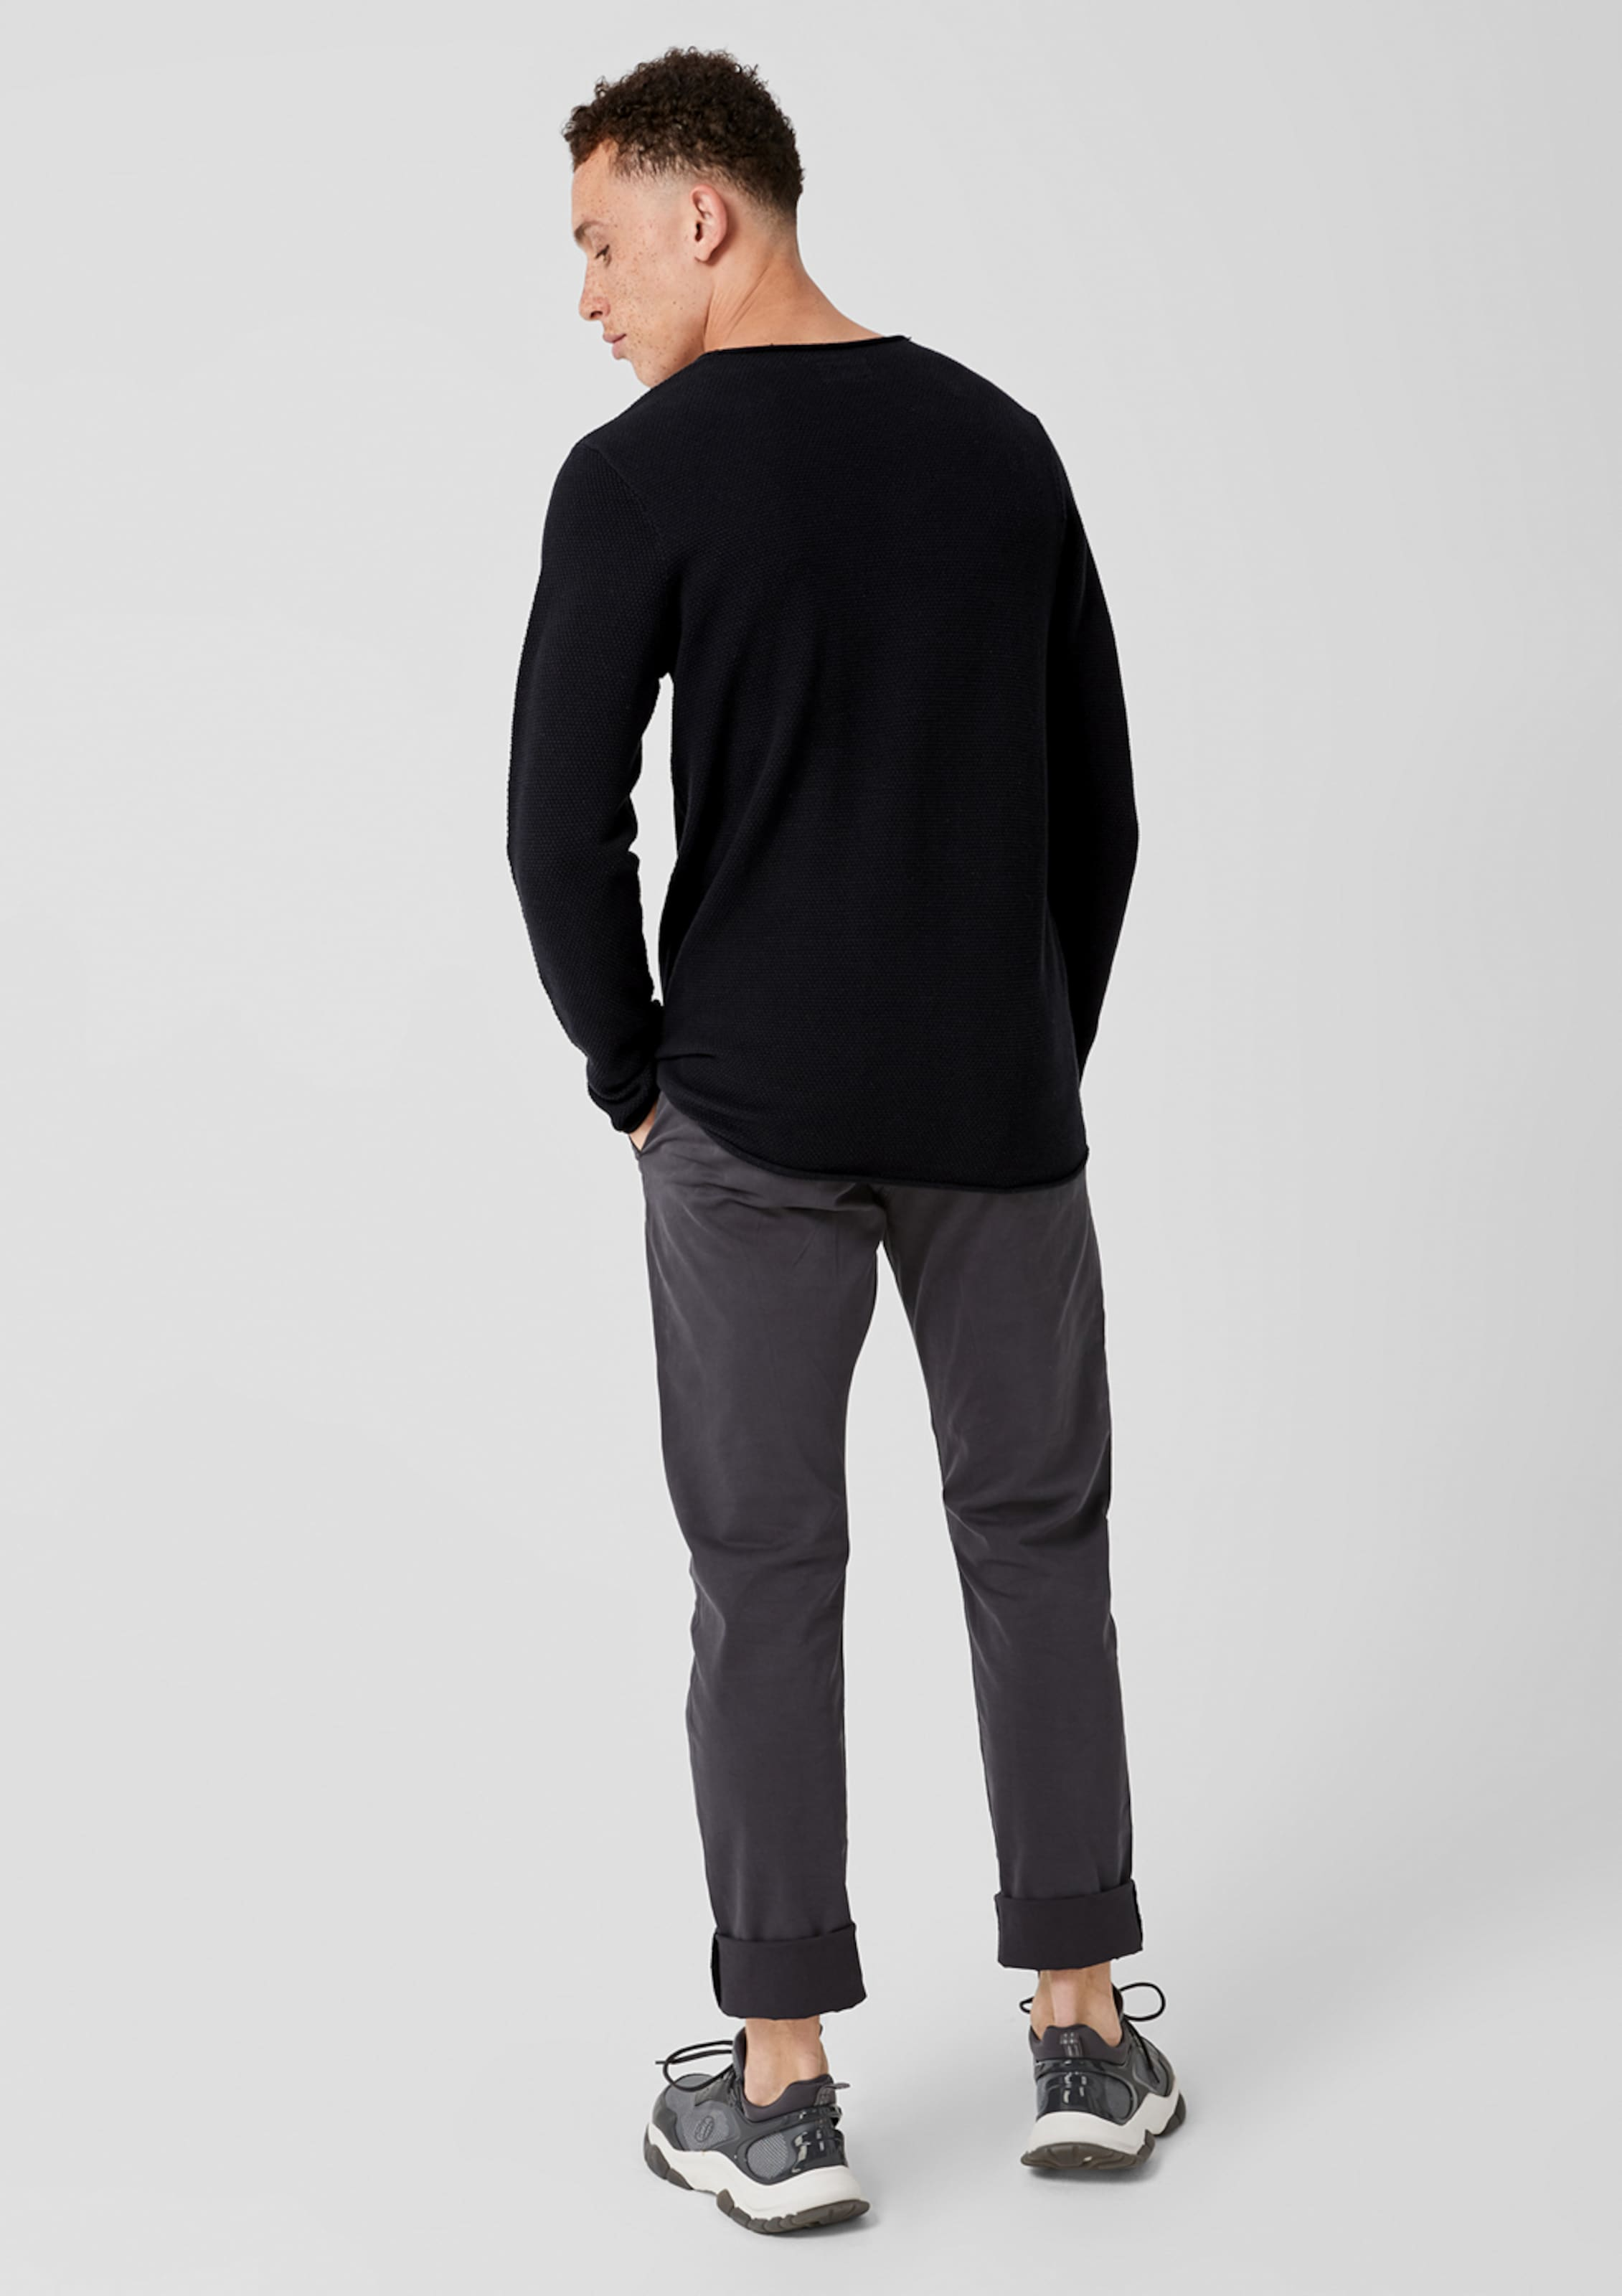 Q s Pullover Designed Schwarz By In gy7vYbf6